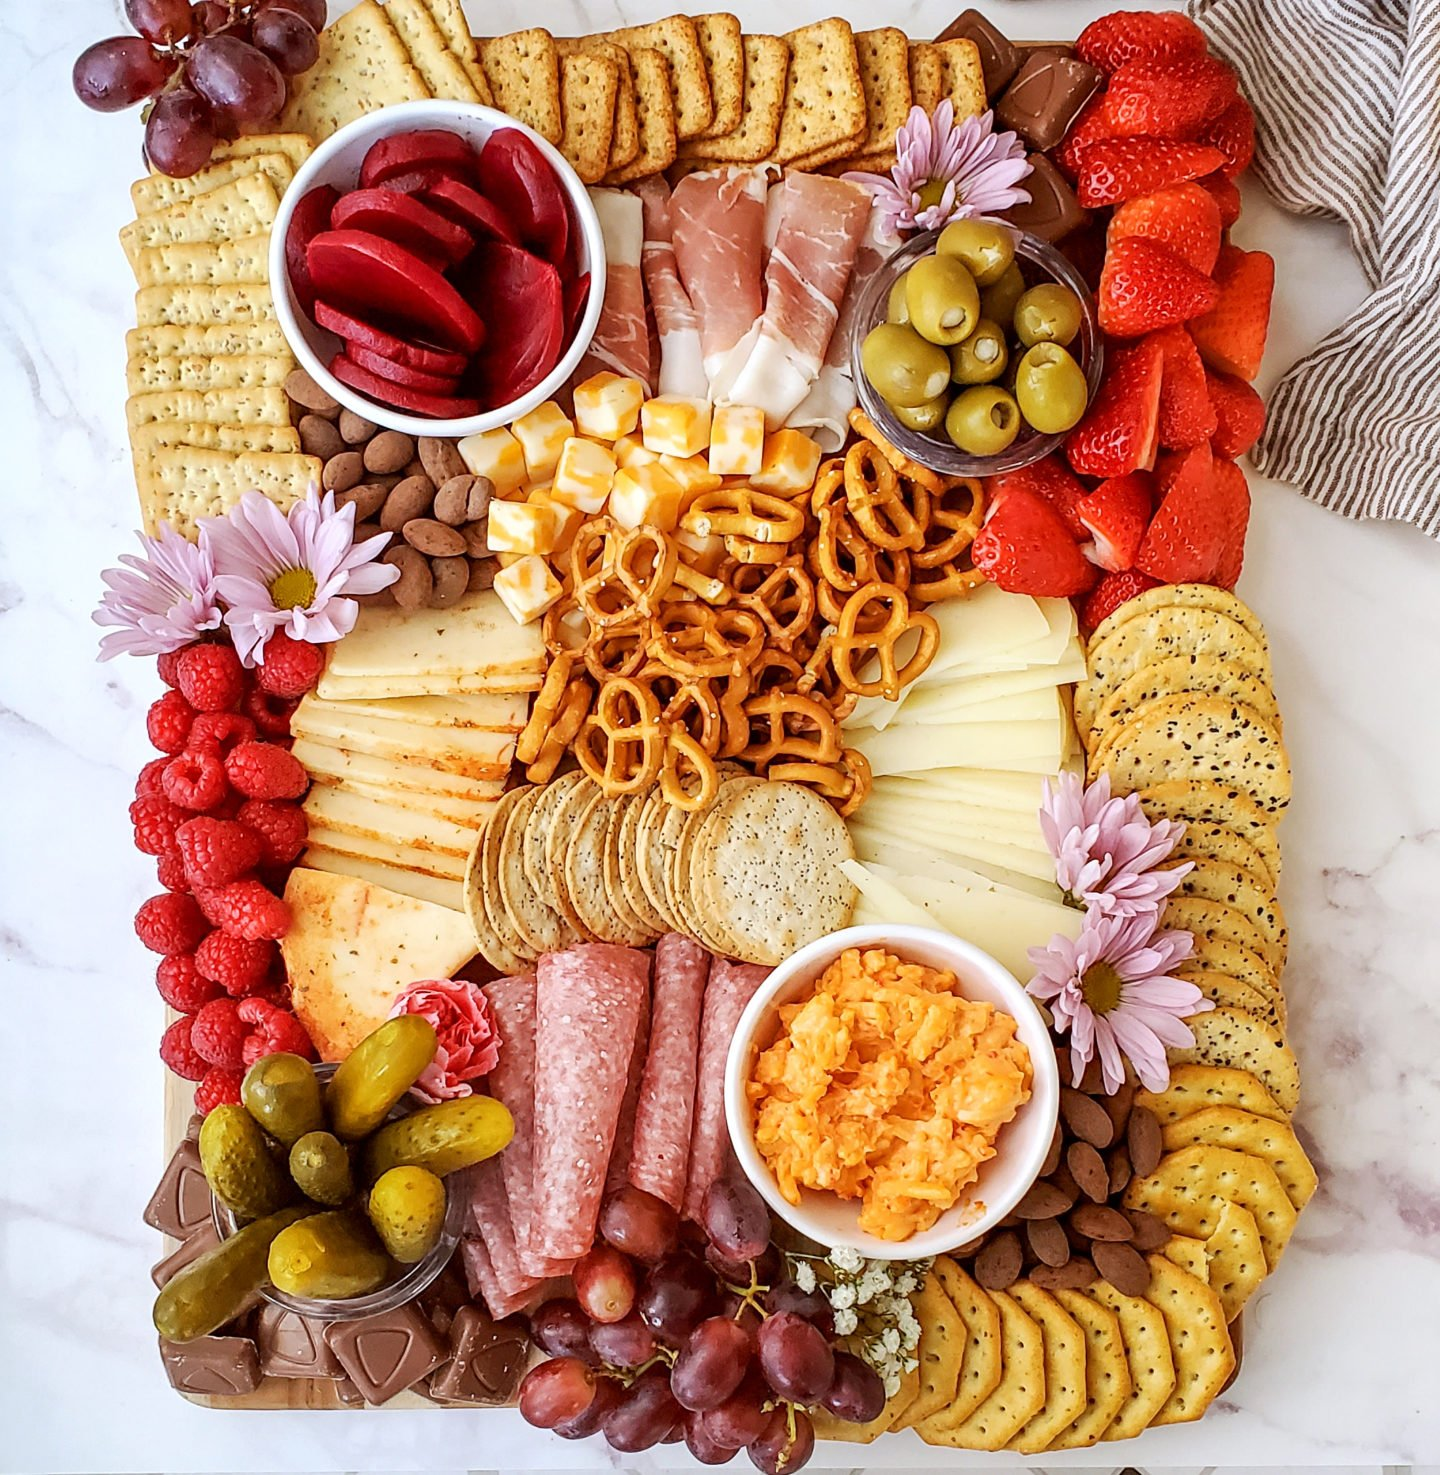 Charcuterie board full of meats, cheeses, veggies, crackers, and more